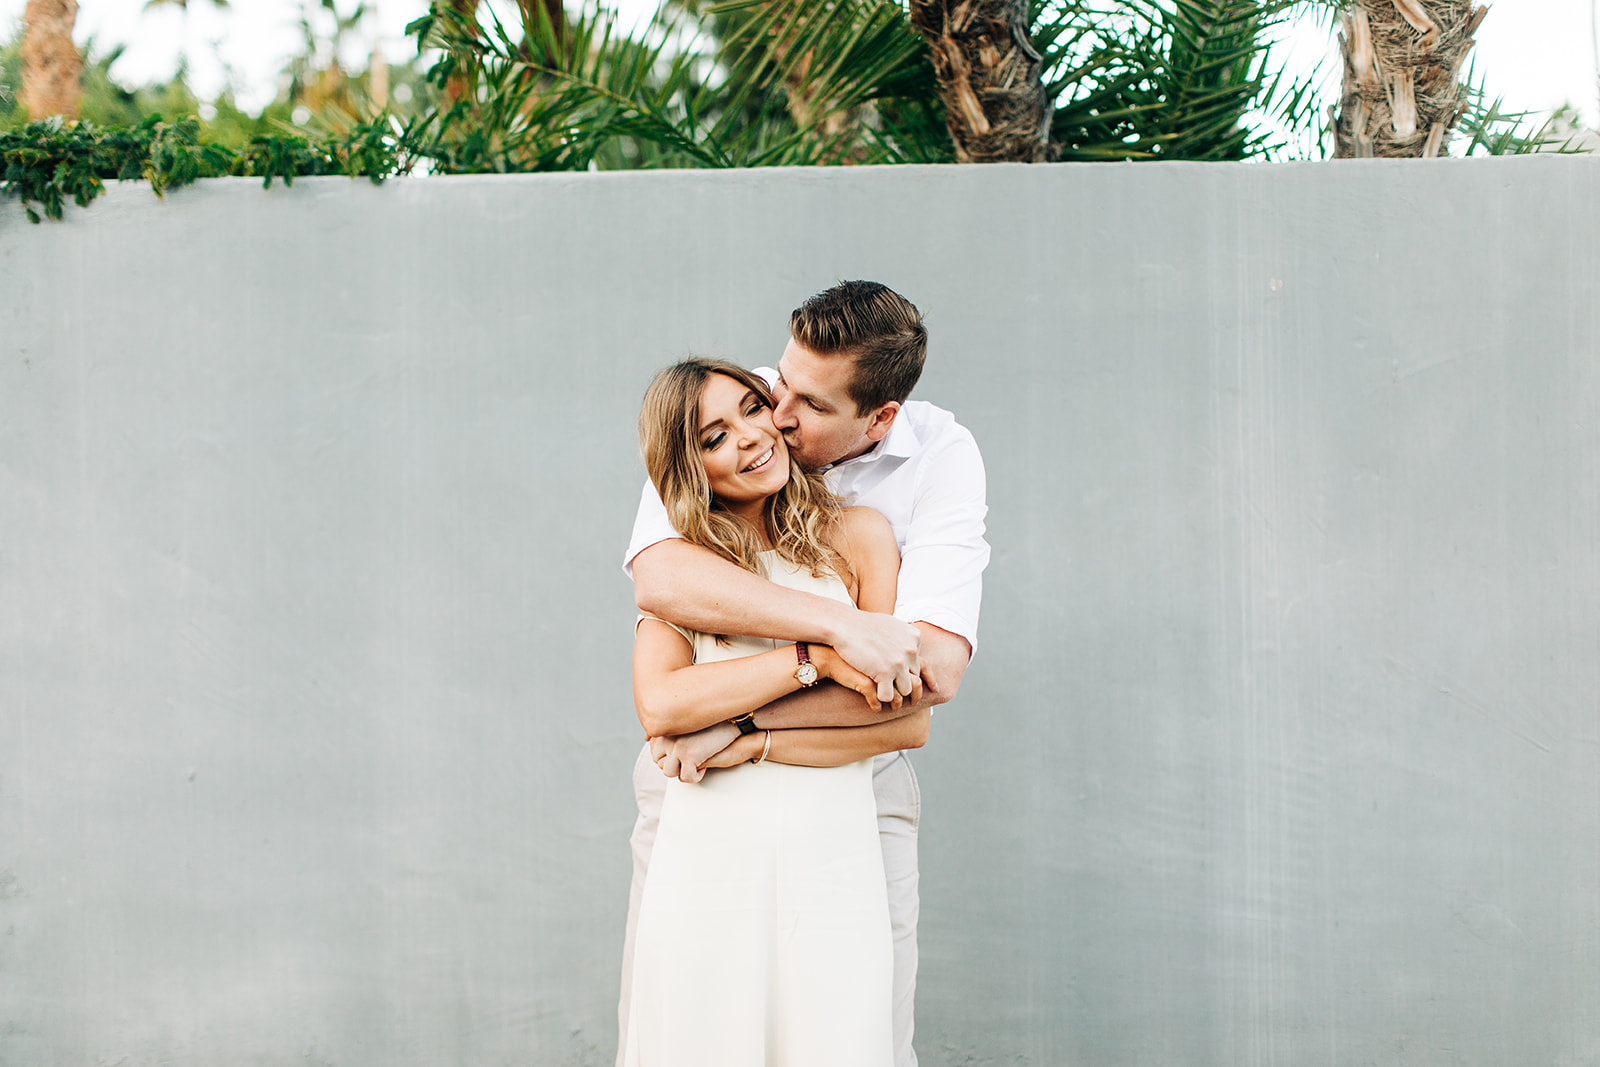 Paulina-Drew_Palm-Springs-Engagement-Photos_Clarisse-Rae_Southern-California-Wedding-Photographer-30